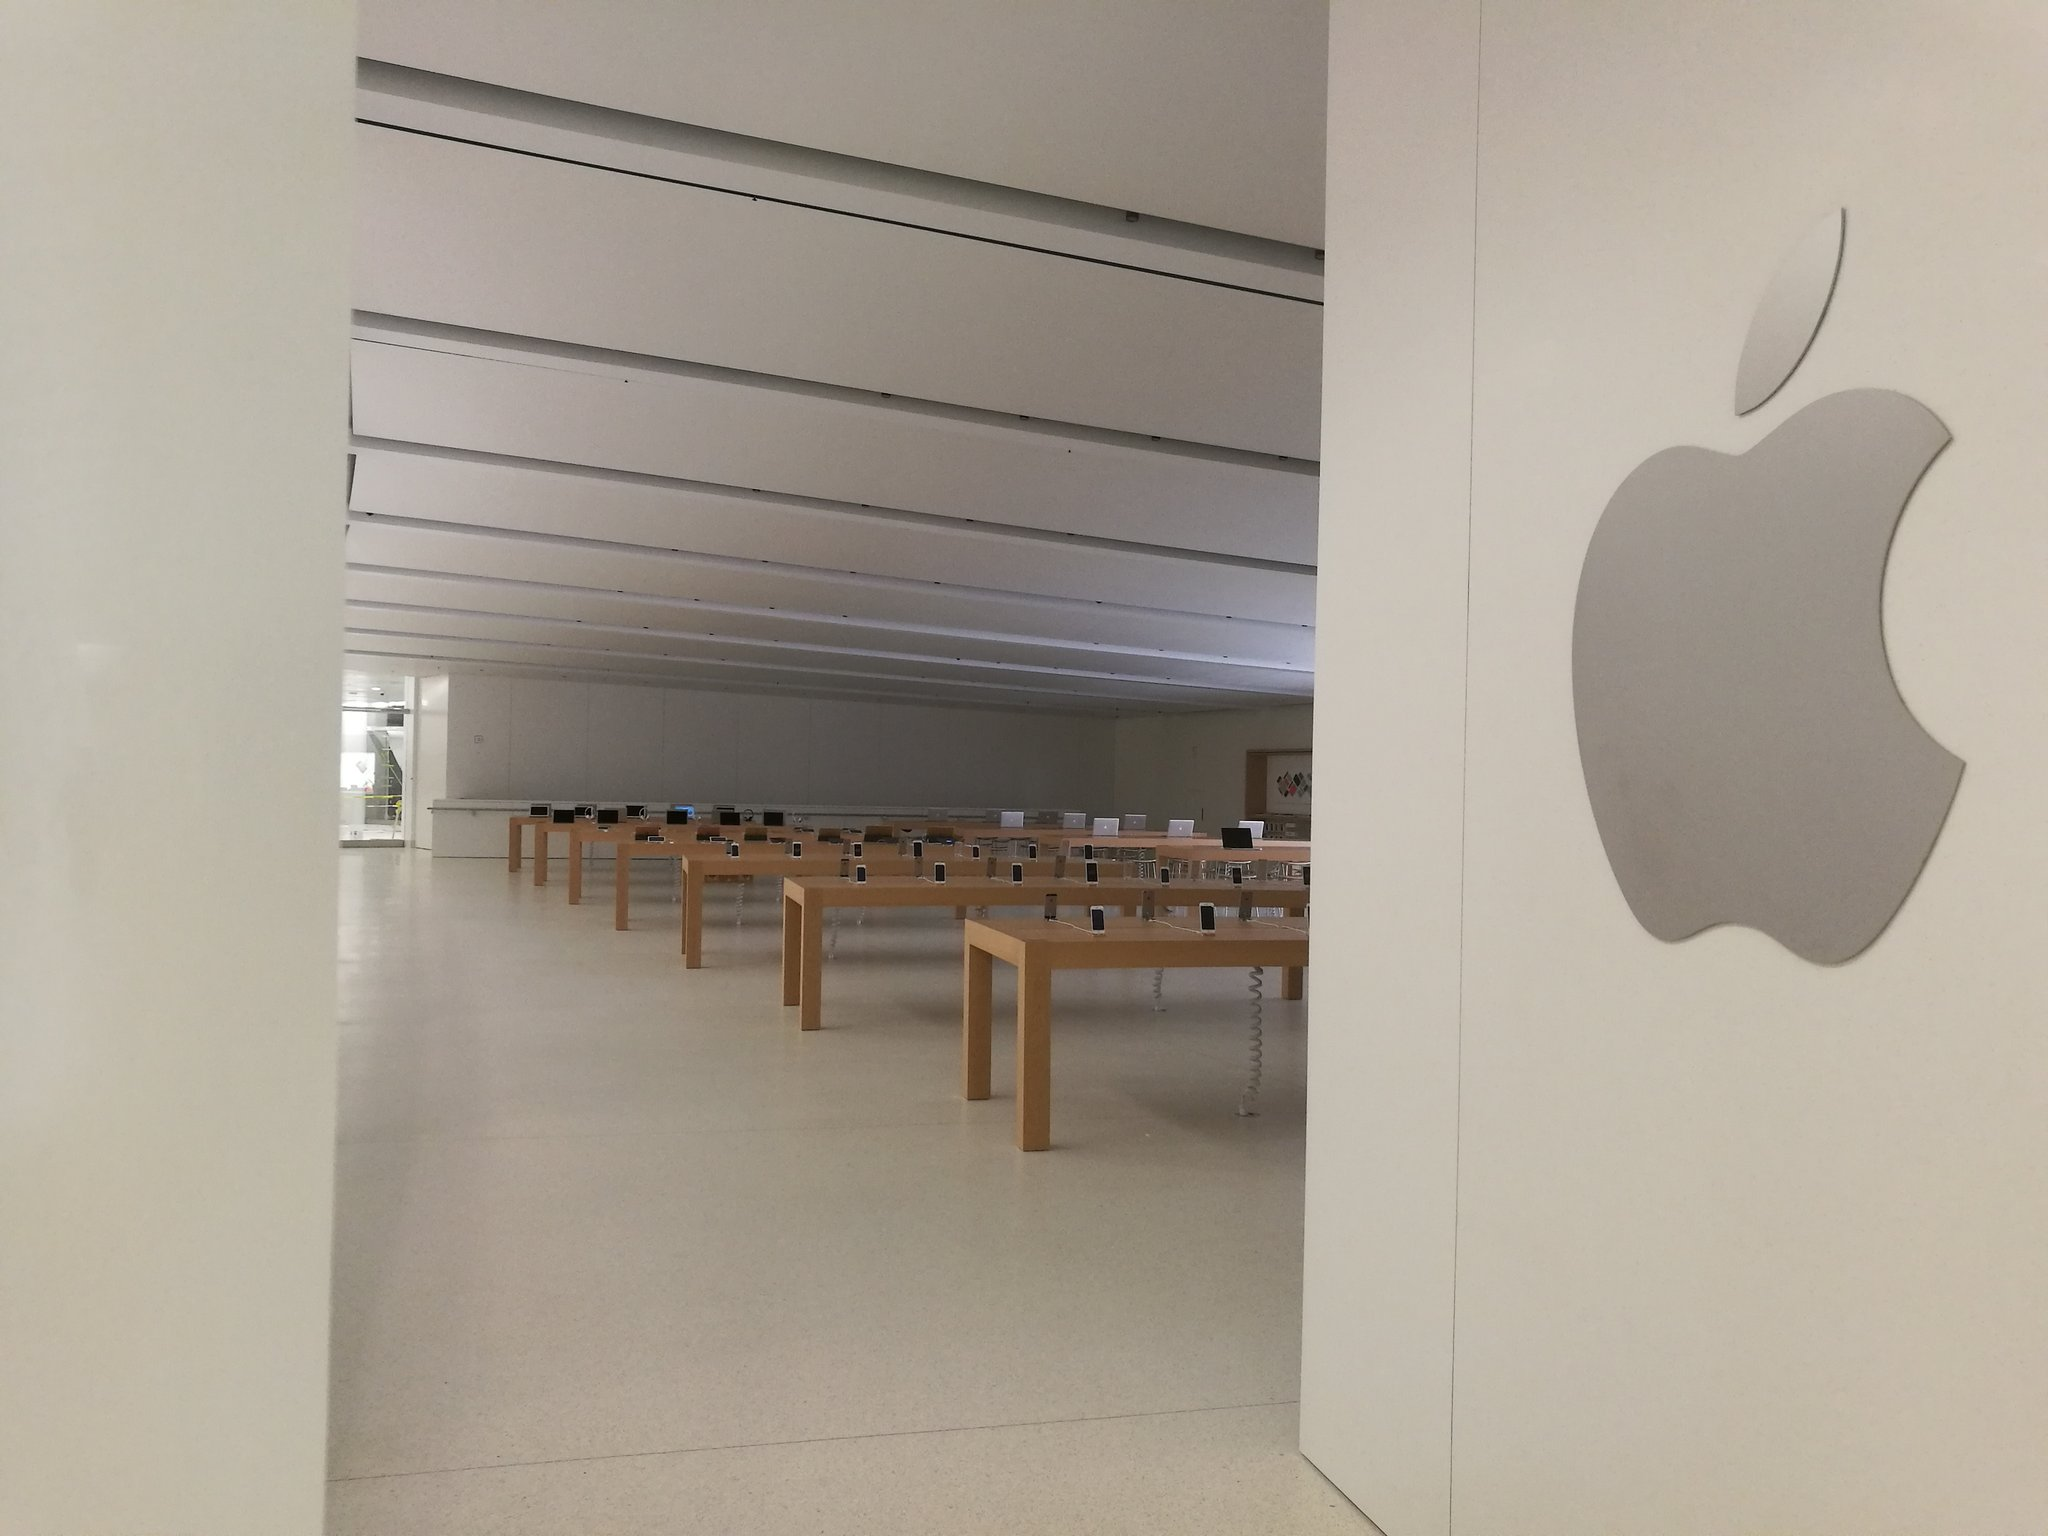 imagini apple store world trade center 3